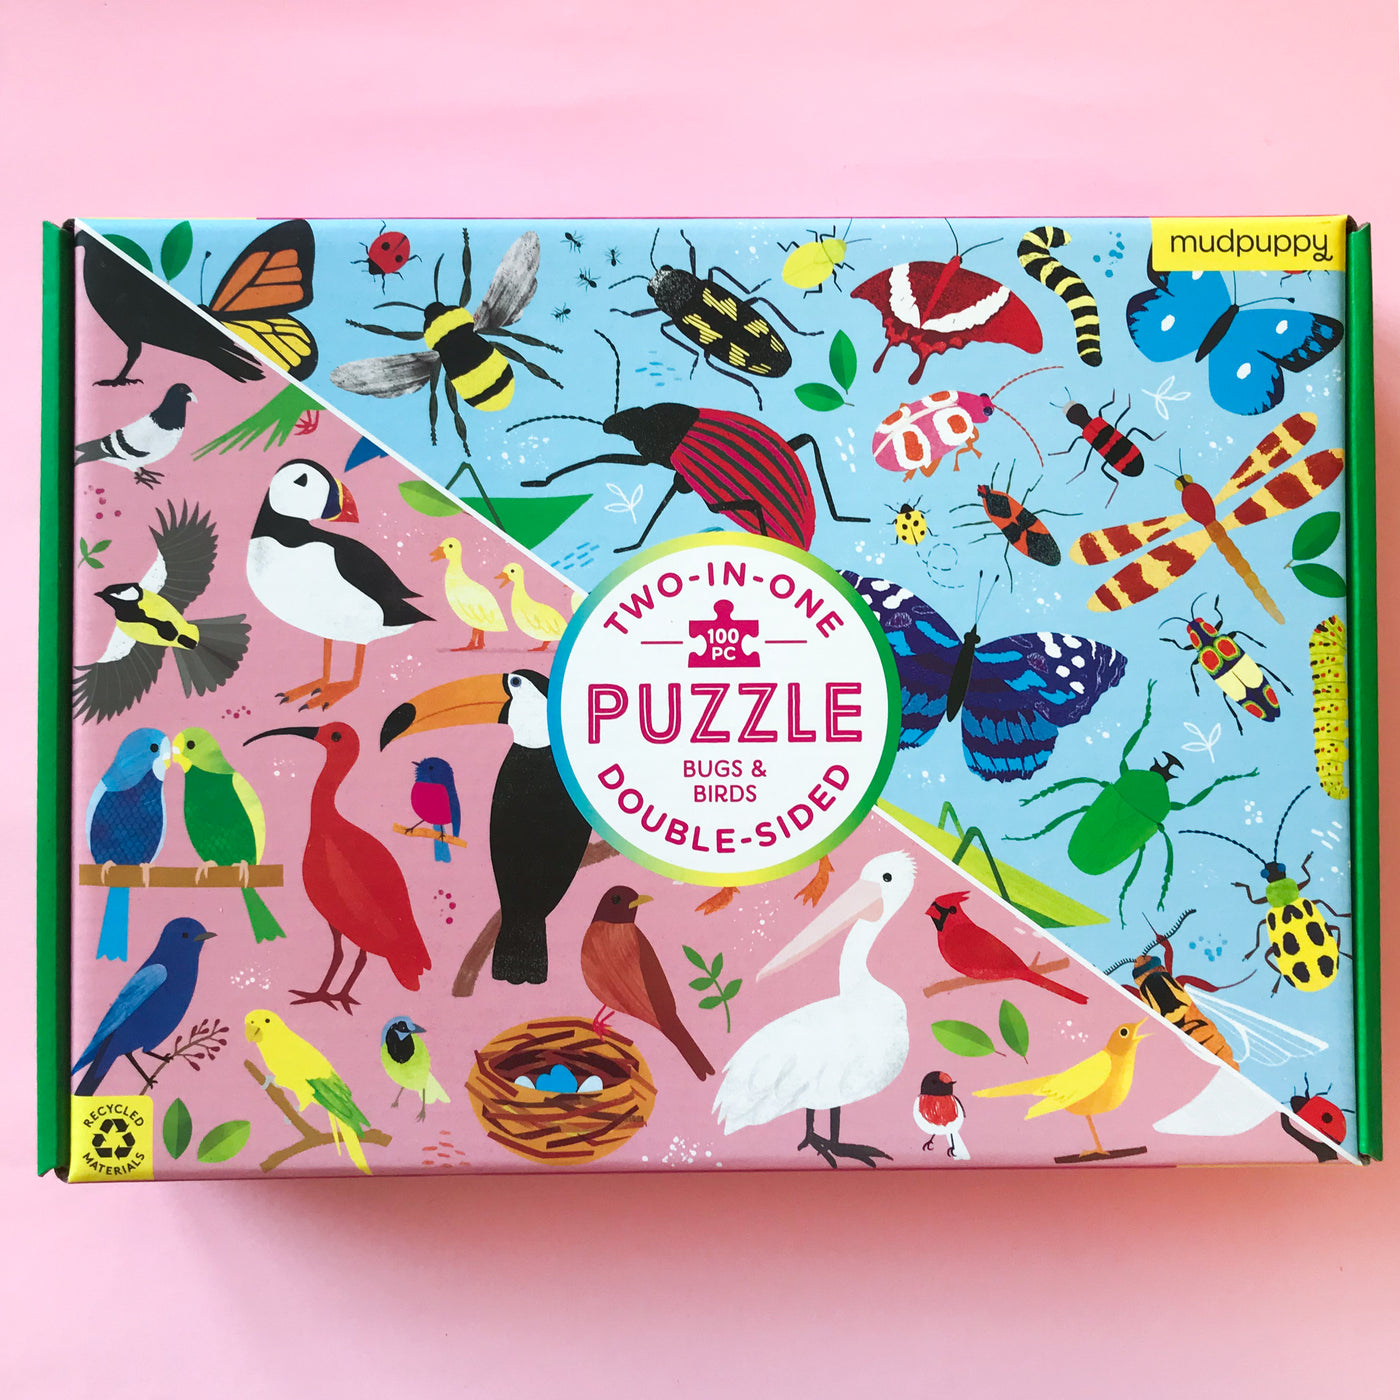 bugs and birds two in one puzzle by mudpuppy